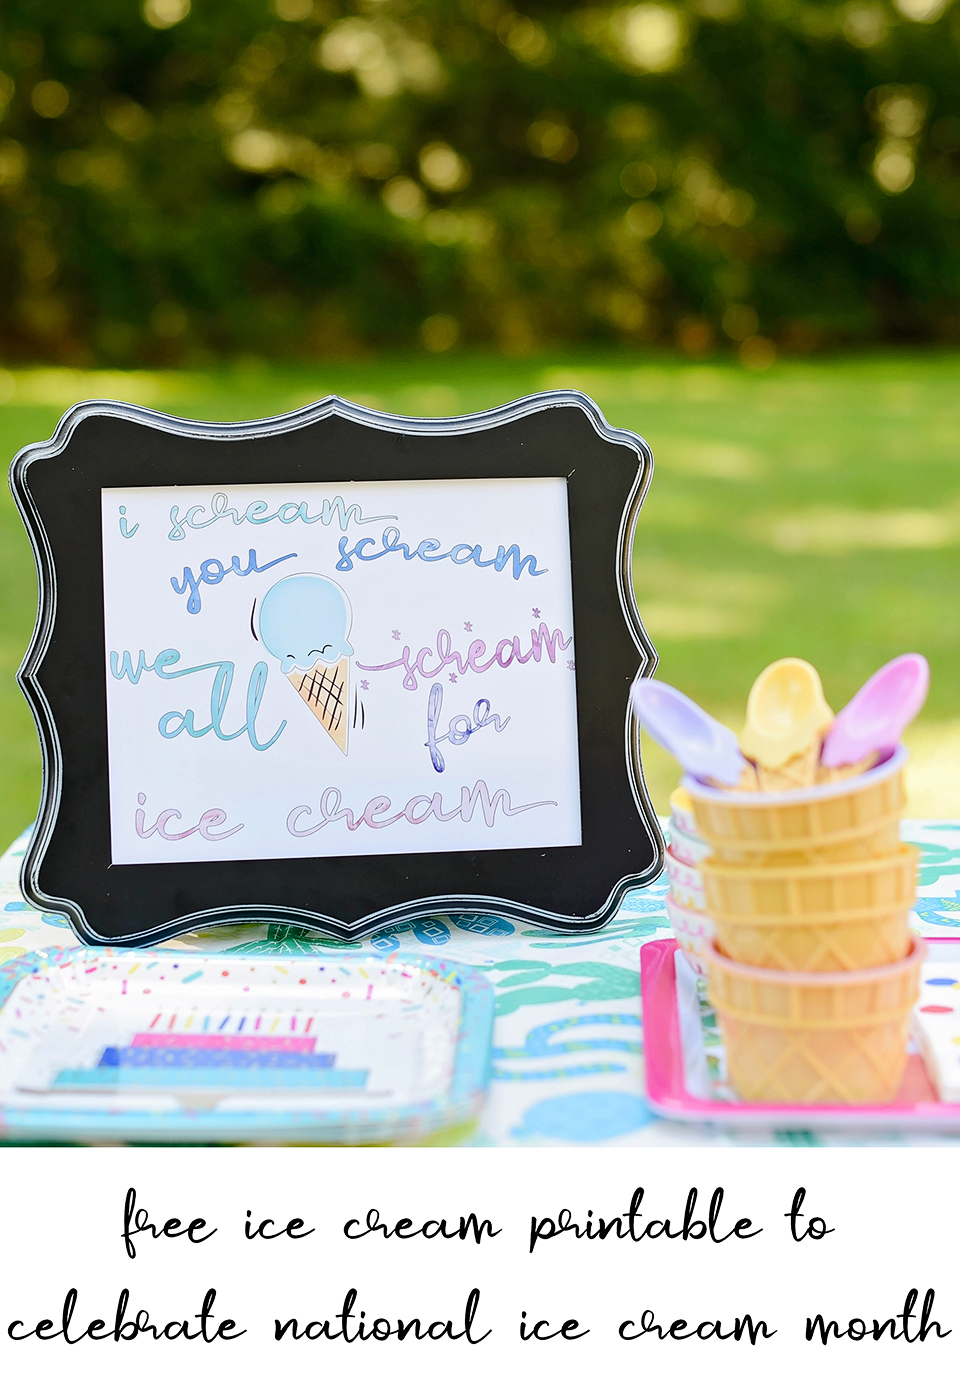 Free Ice Cream Printable to Celebrate National Ice Cream Month